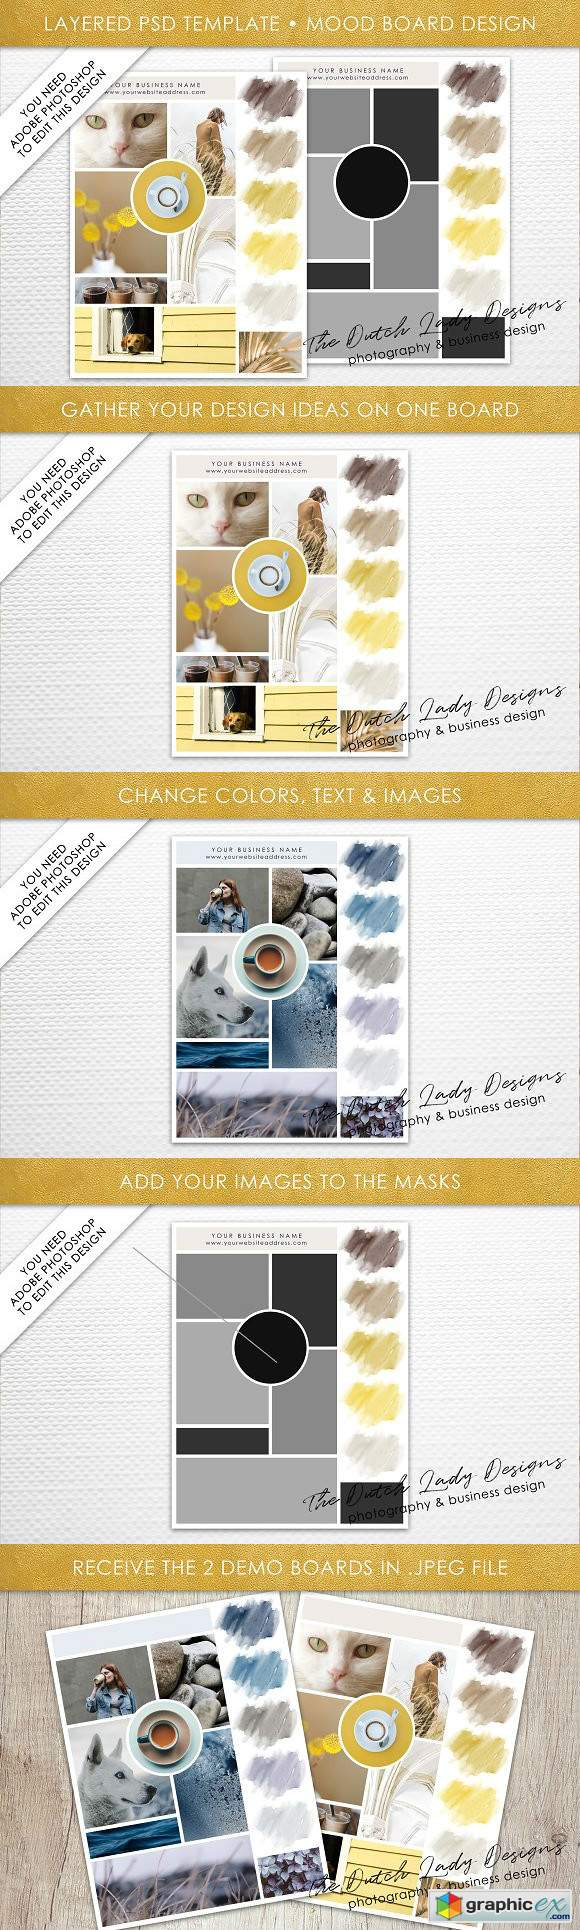 Mood Vision Board Template 5 Free Download Vector Stock Image